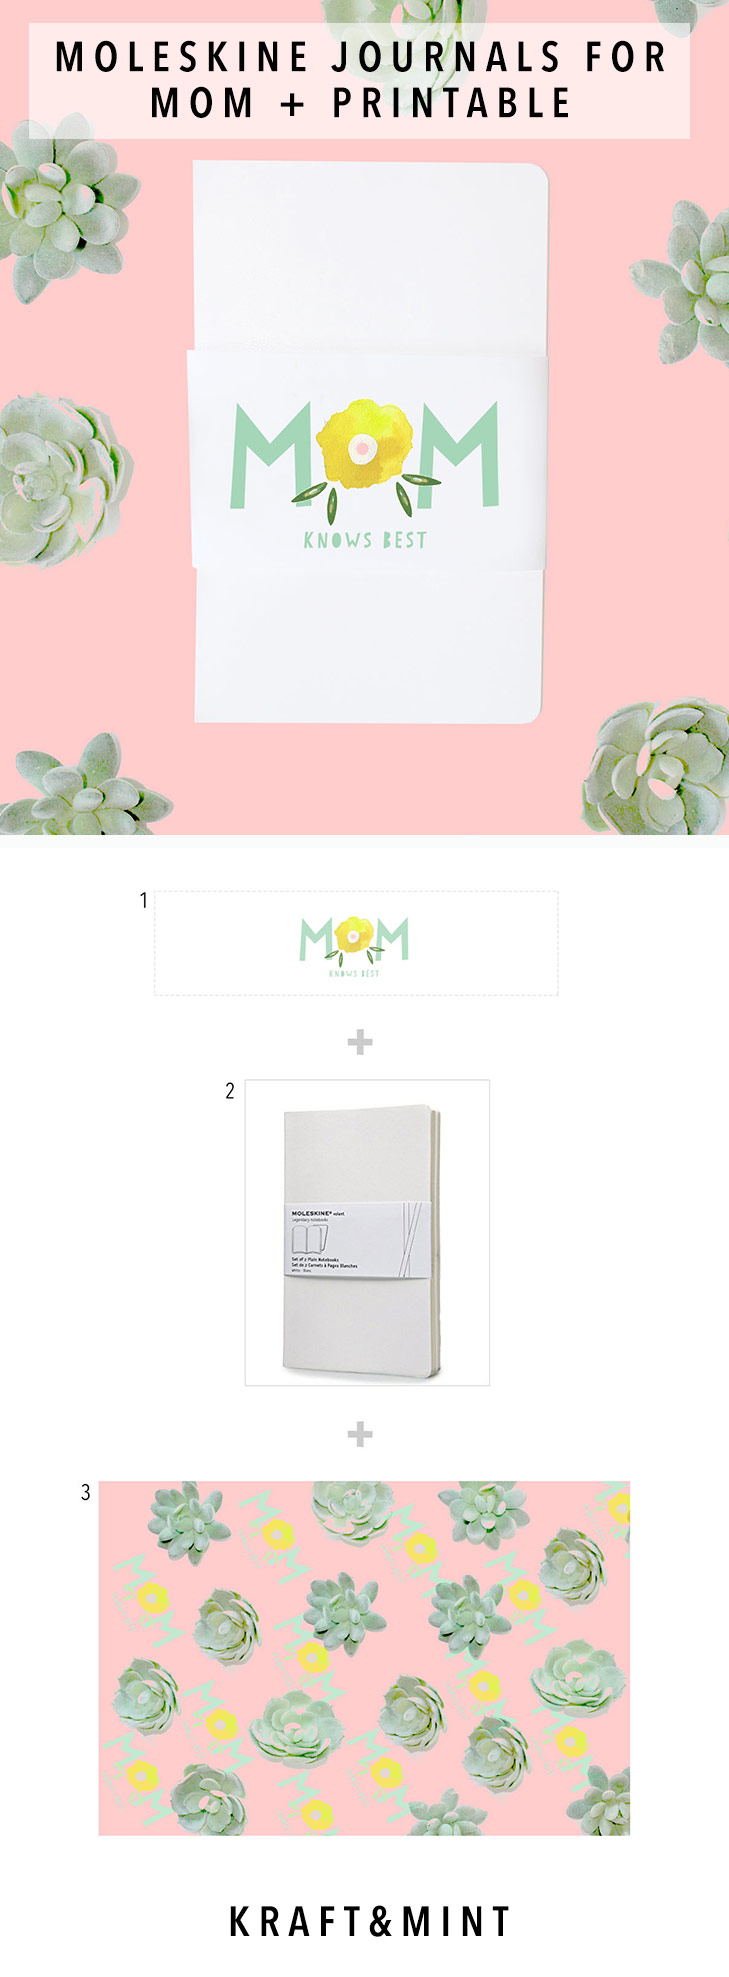 Give mom a set of Moleskine Journals + Free Printable to make your gift pretty. kraft&mint #moleskine